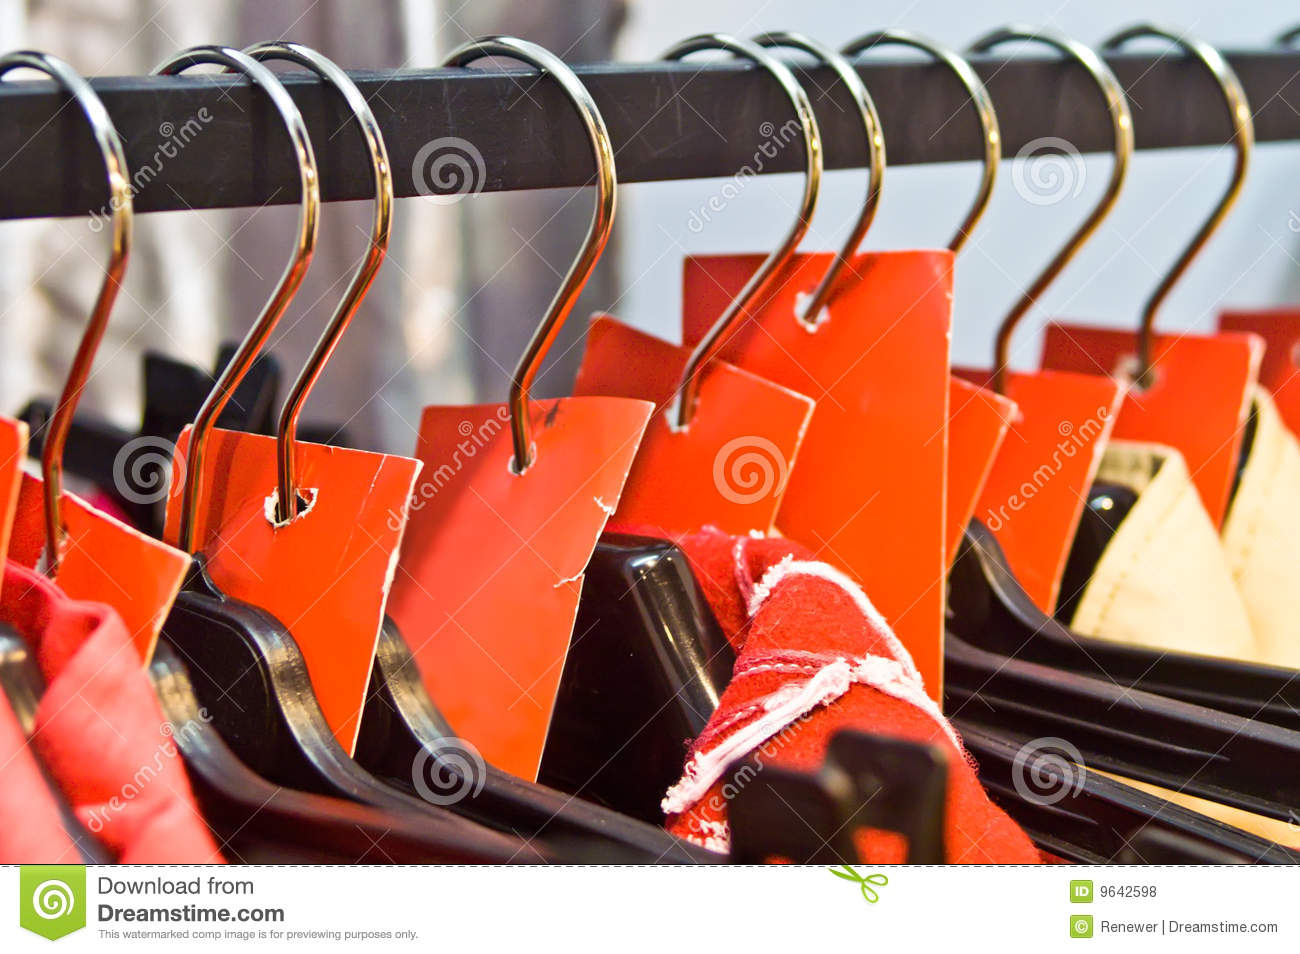 Shelves And Hangers In The Clothing Store Stock Photo, Picture And